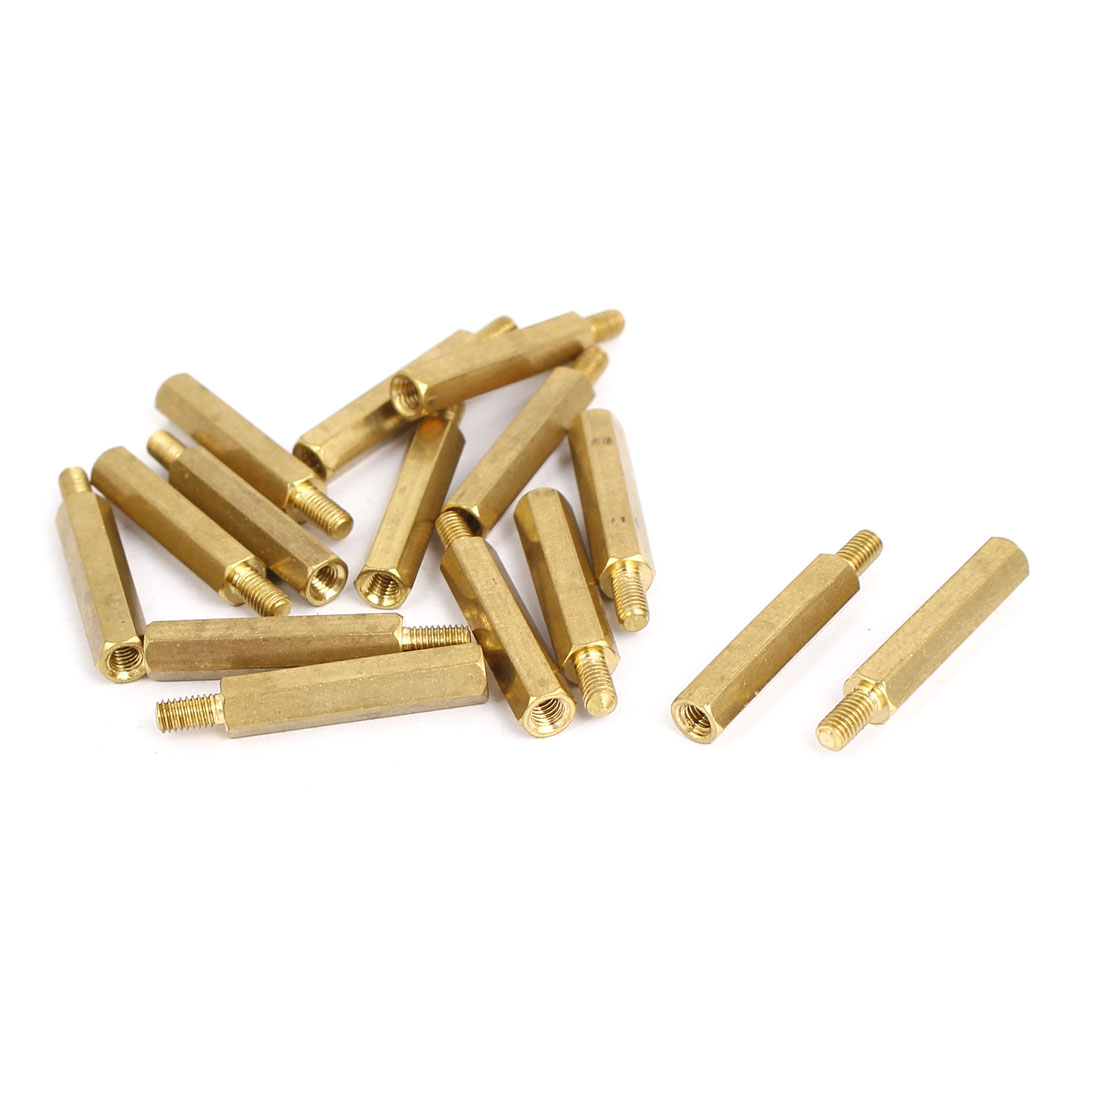 M3x22+6mm Male/Female Threaded Brass Hex Tapped Hexagonal Spacer Standoff Pillar 15pcs